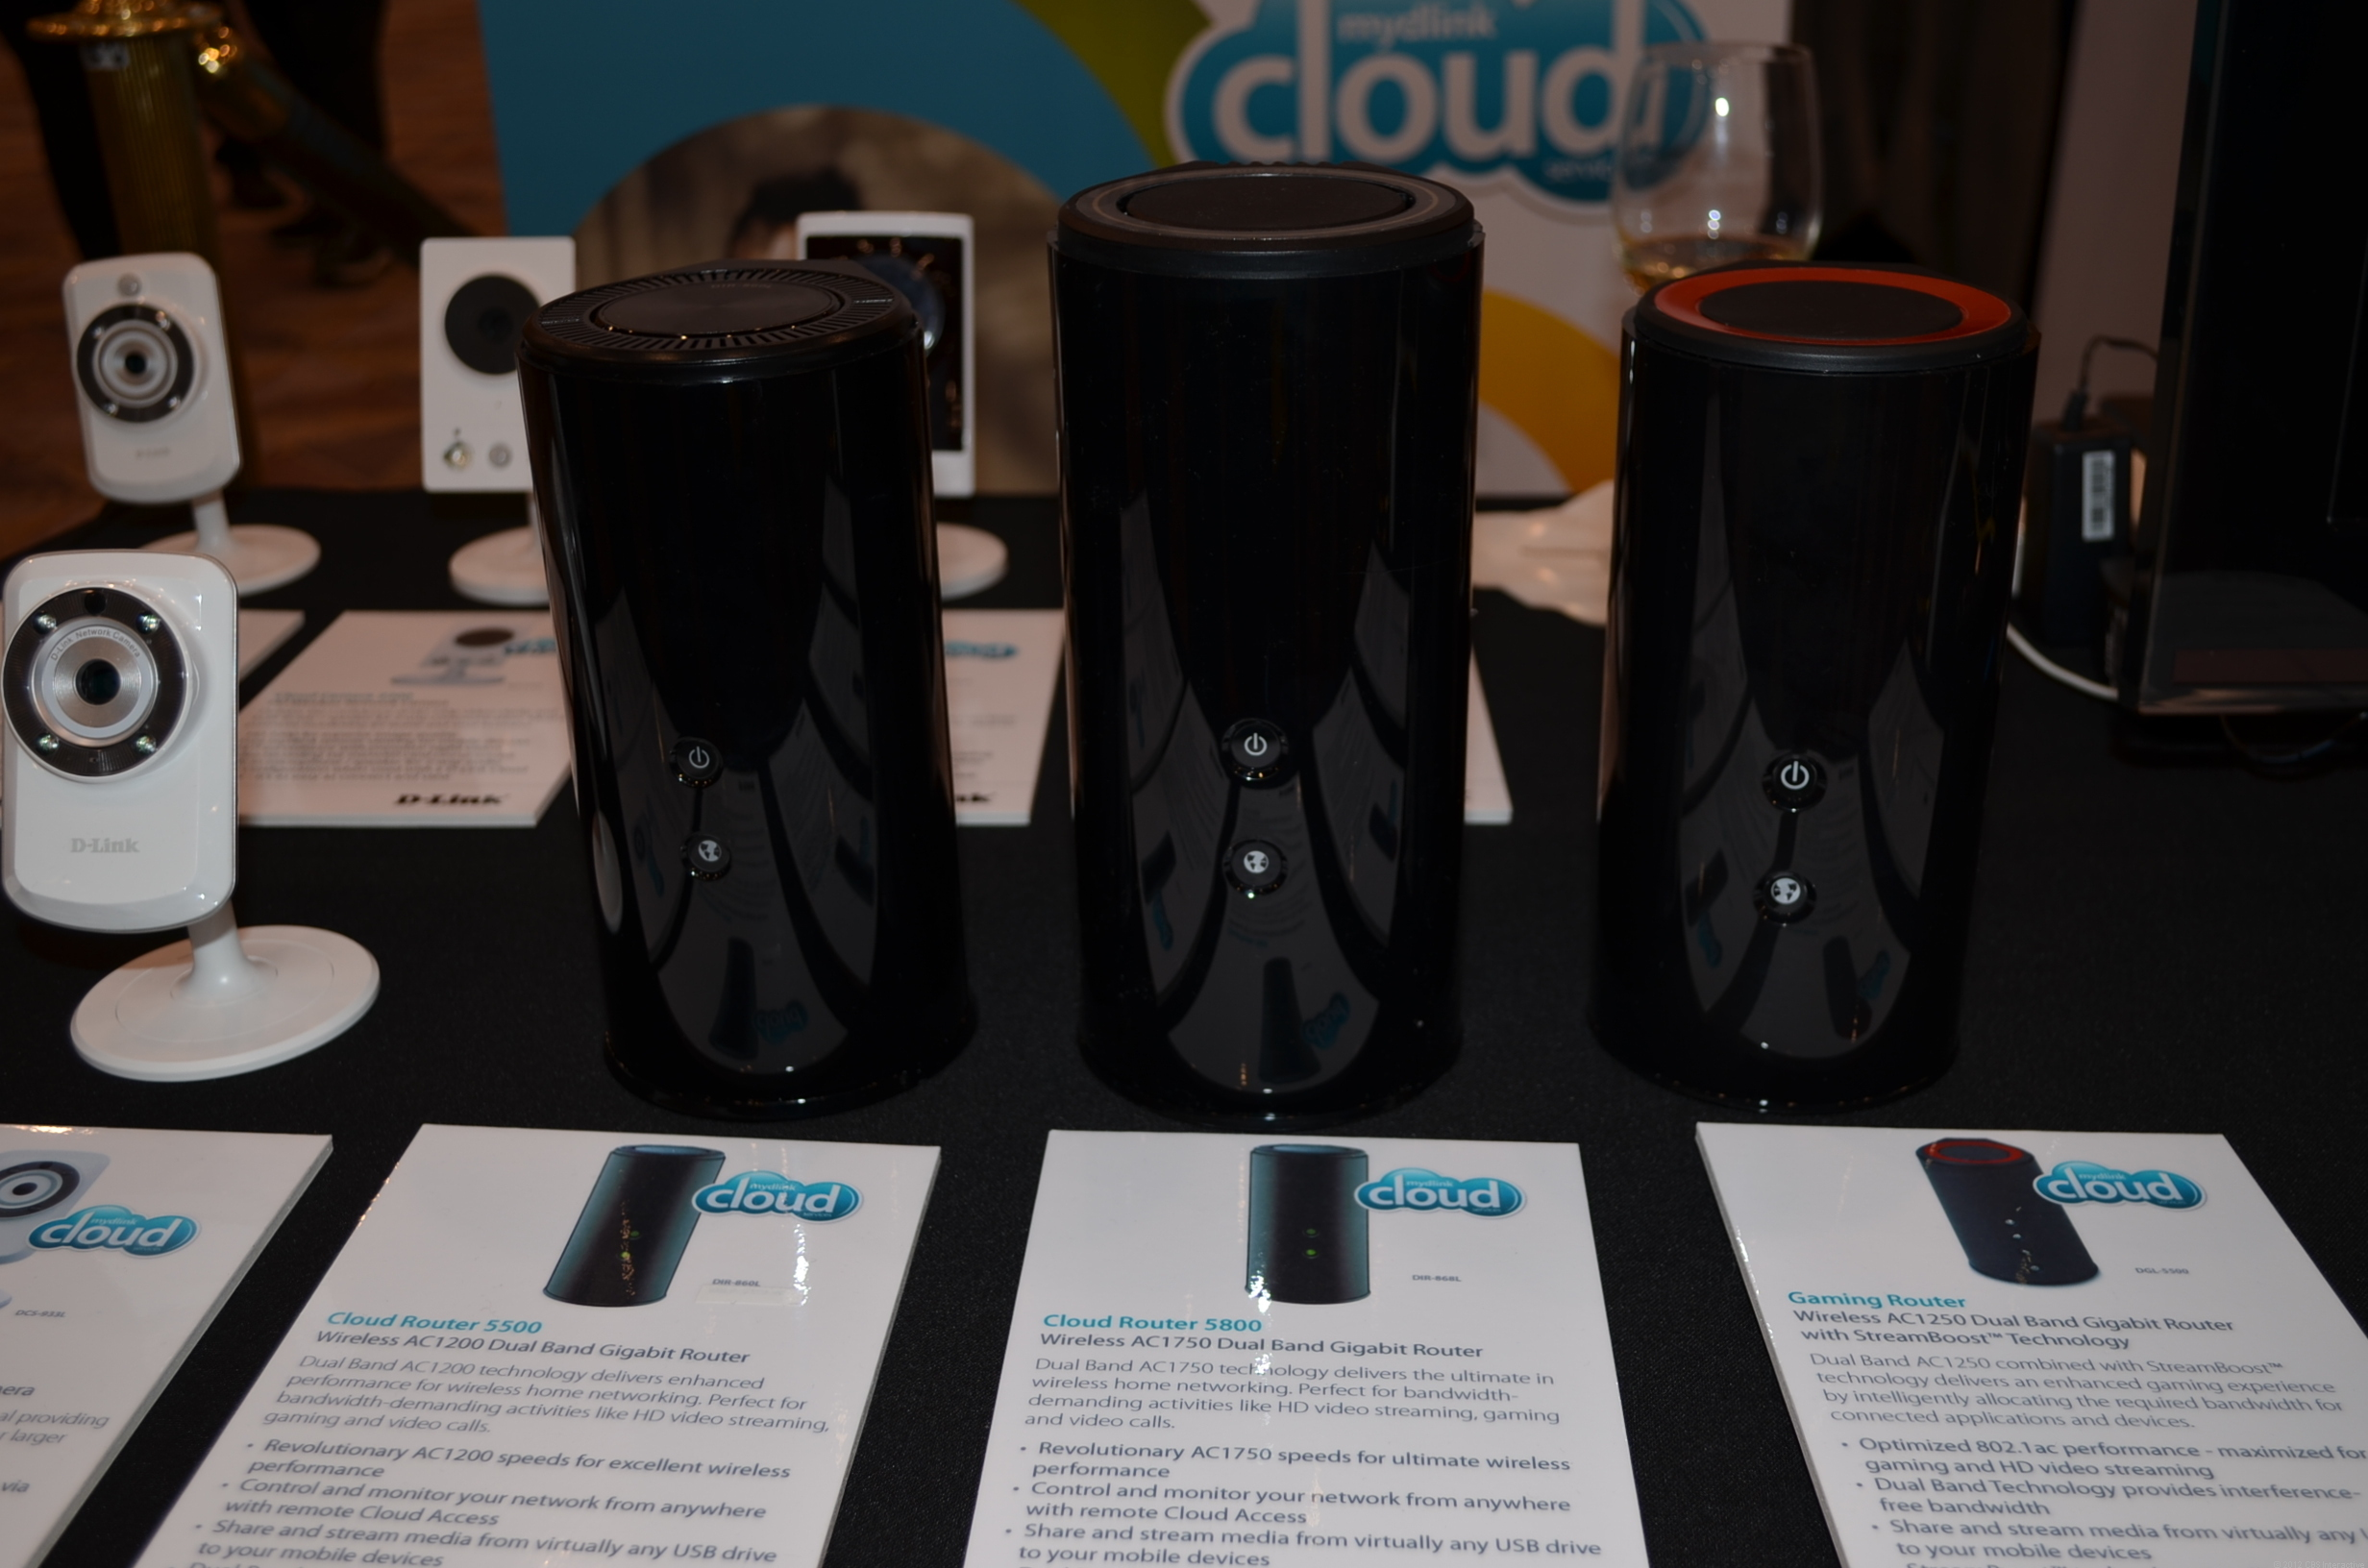 The two new 802.11ac routers, DIR-860L (left) and DIR-868L (middle), next to the all new DGL-5500 (red top) at CES 2013.